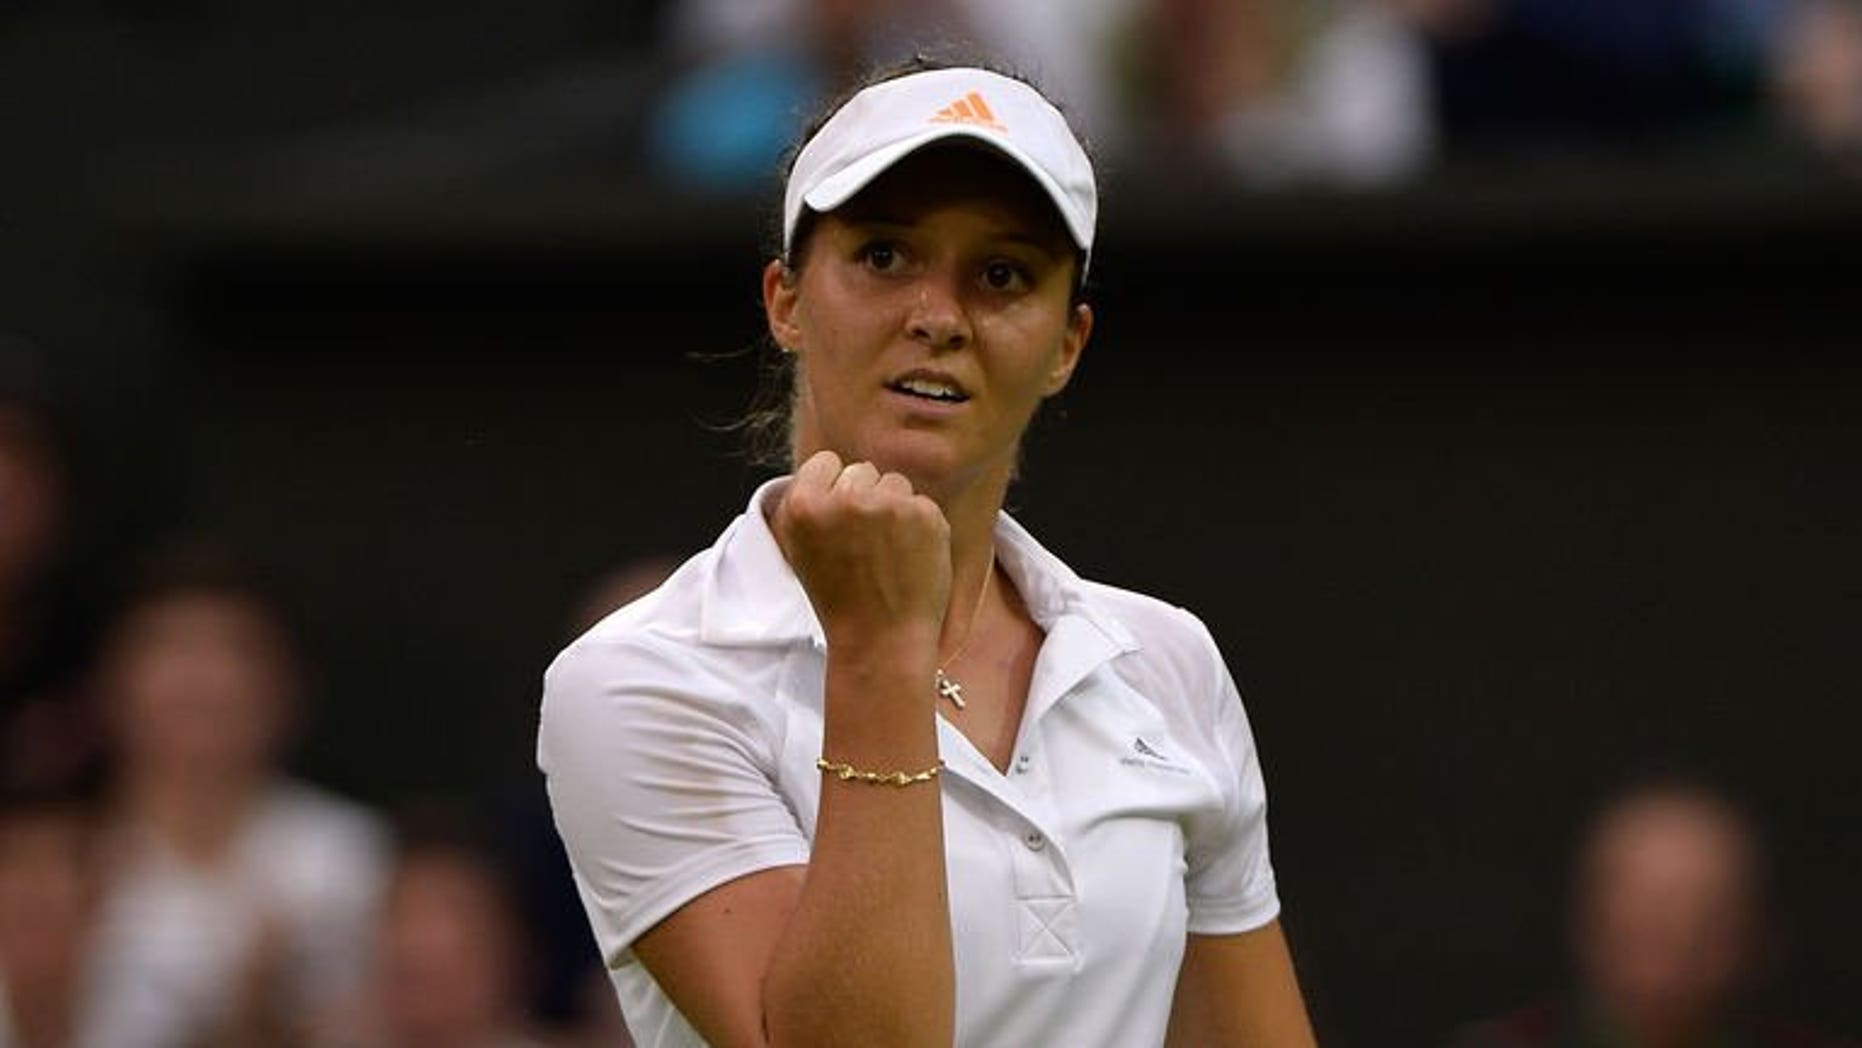 Britain's Laura Robson celebrates reaching match point against Colombia's Mariana Duque-Marino during their second round Wimbledon match on June 28, 2013. Robson won 6-4, 6-1 to become the first British woman to reach the Wimbledon fourth round in 15 years.